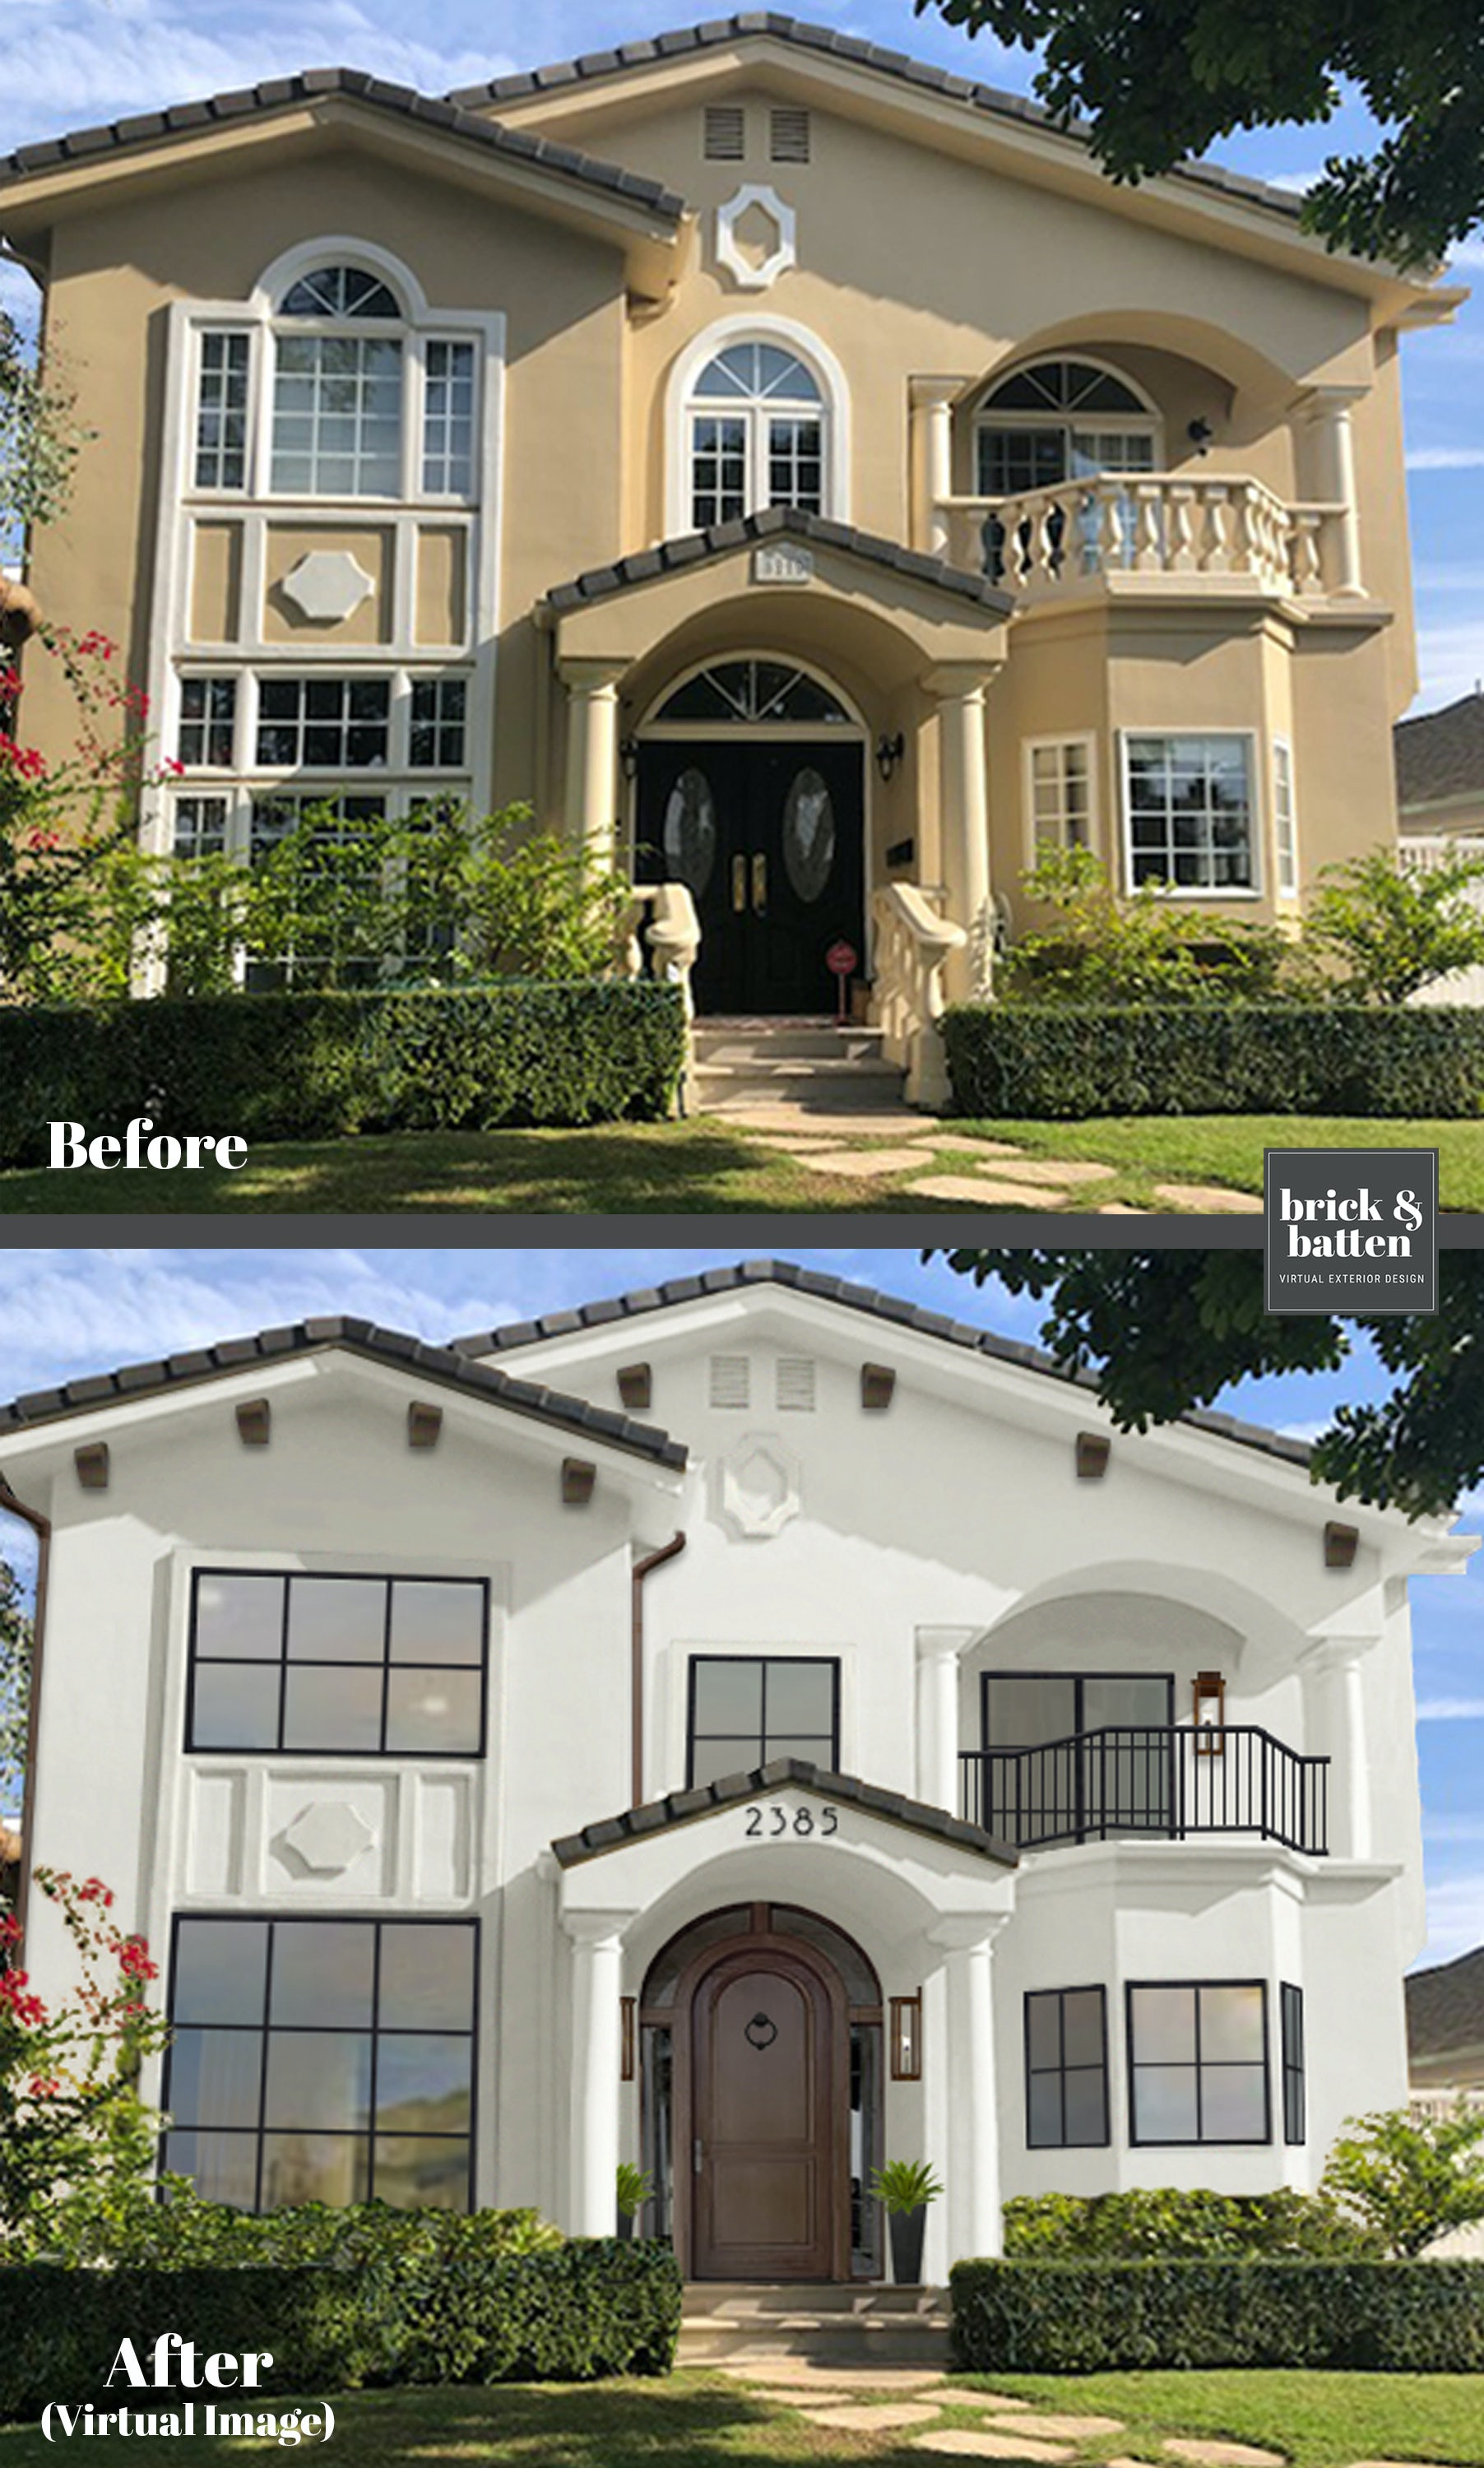 World No 1 Beautiful House Lovely Home Exterior Design Tips for 2020 Blog